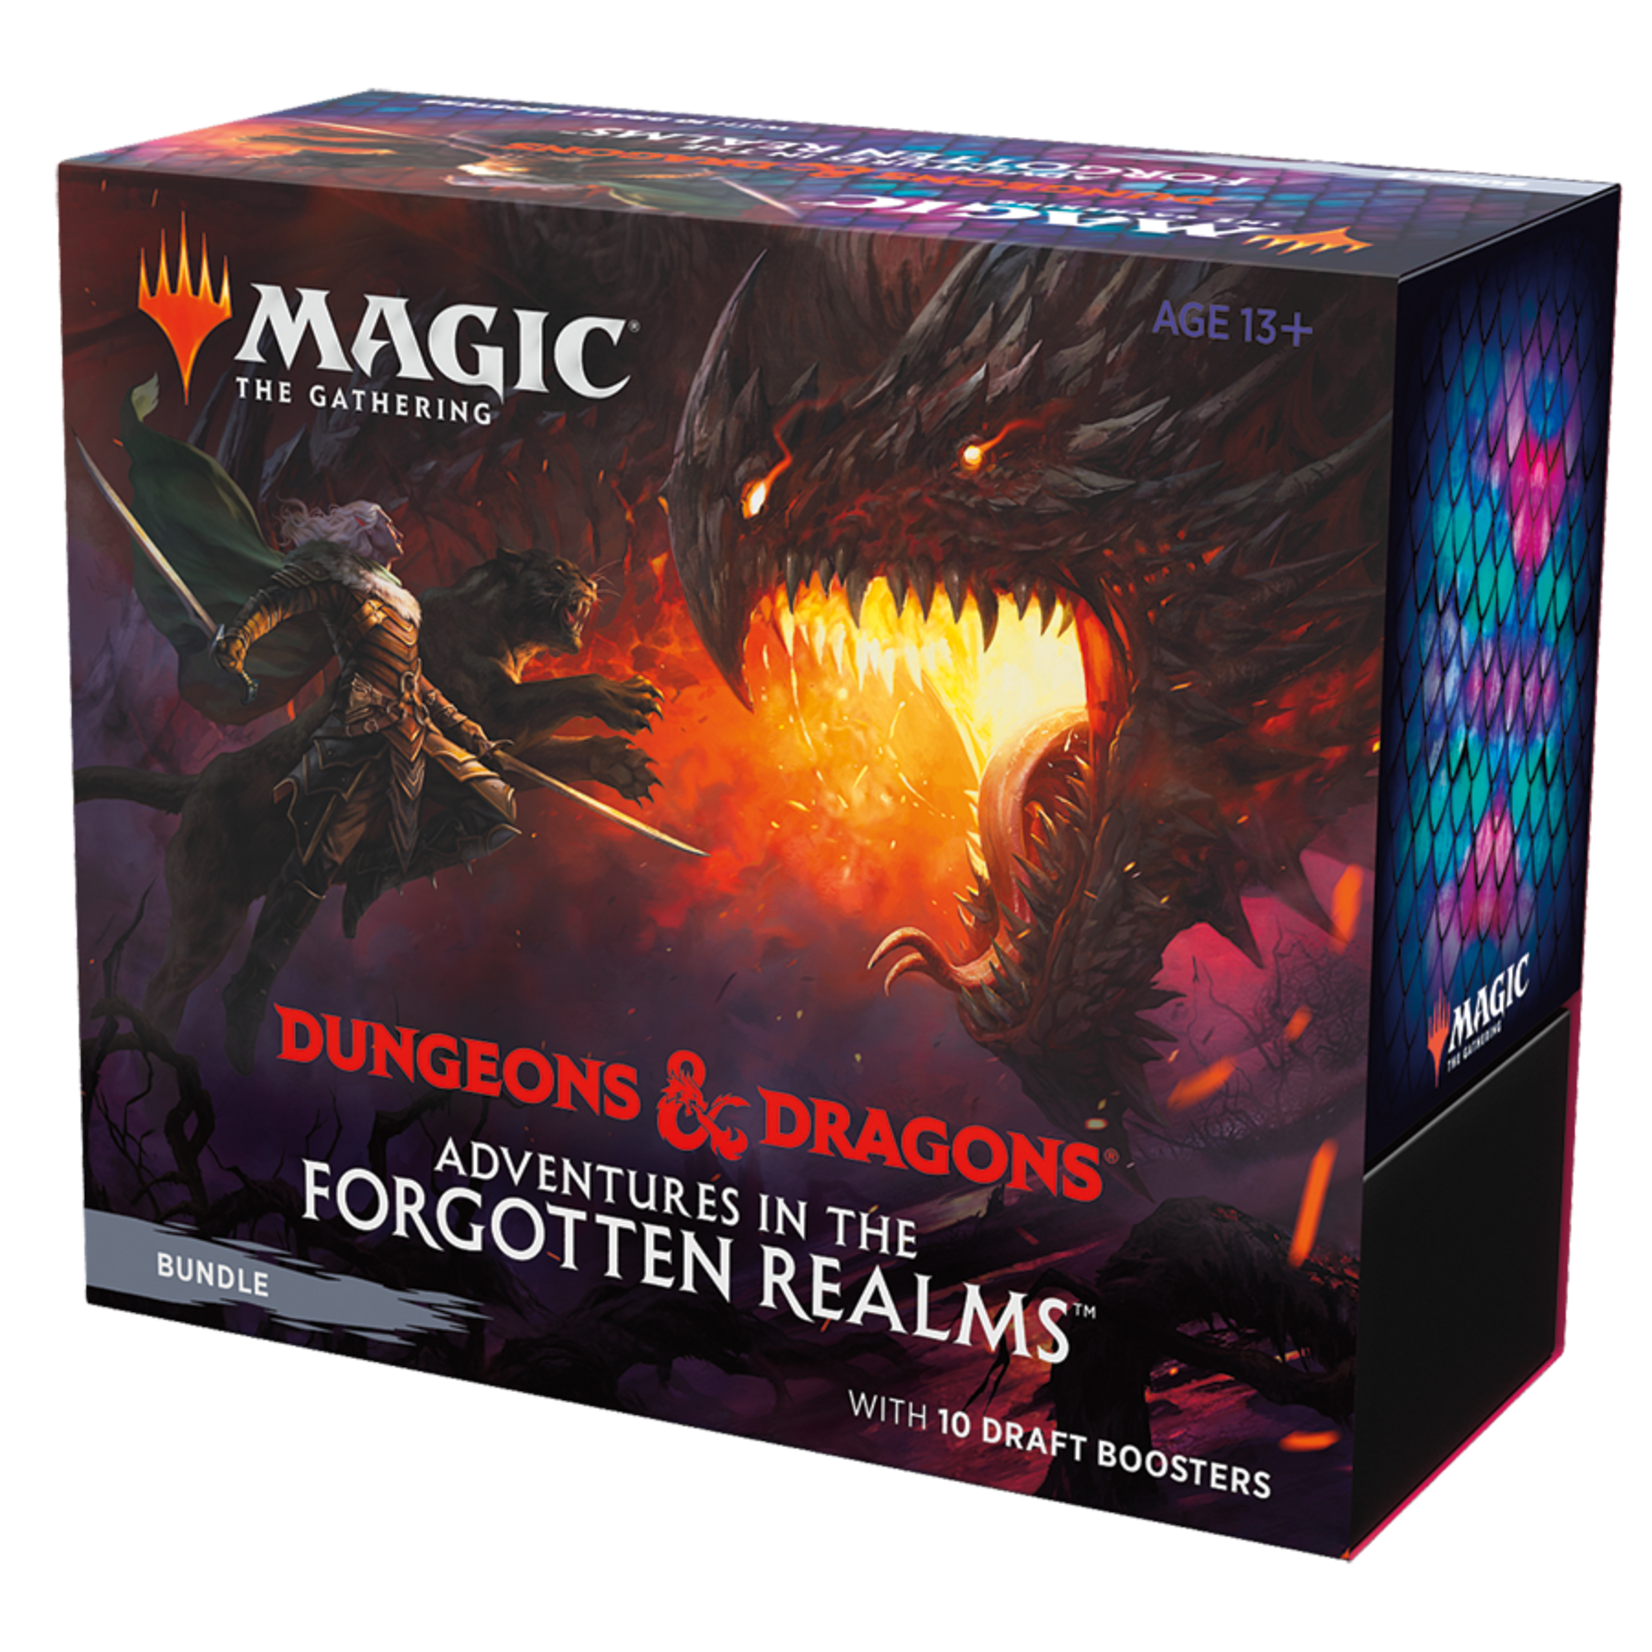 Magic: The Gathering Magic: The Gathering - Adventures in the Forgotten Realms Bundle